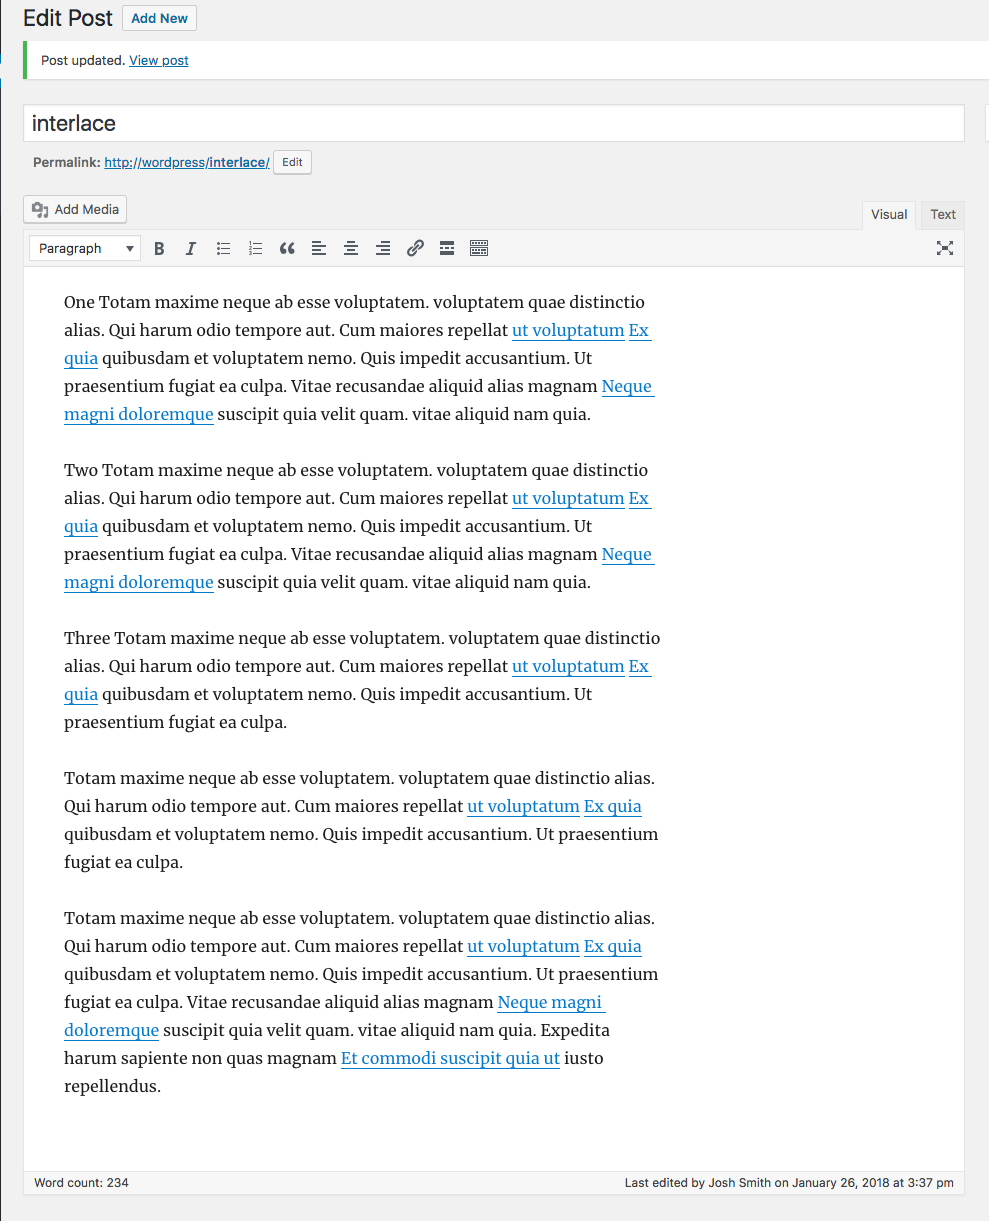 View of the Post editor without any interlaced content, because authors don't have to add it!